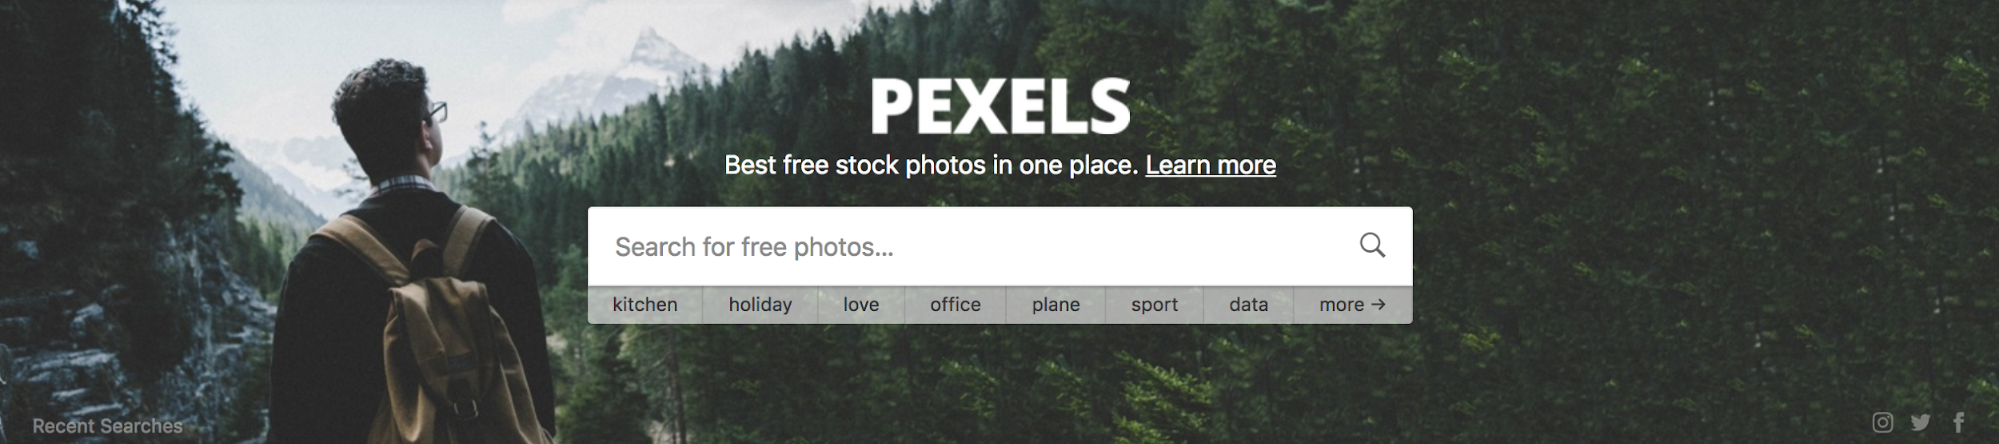 Pexels website